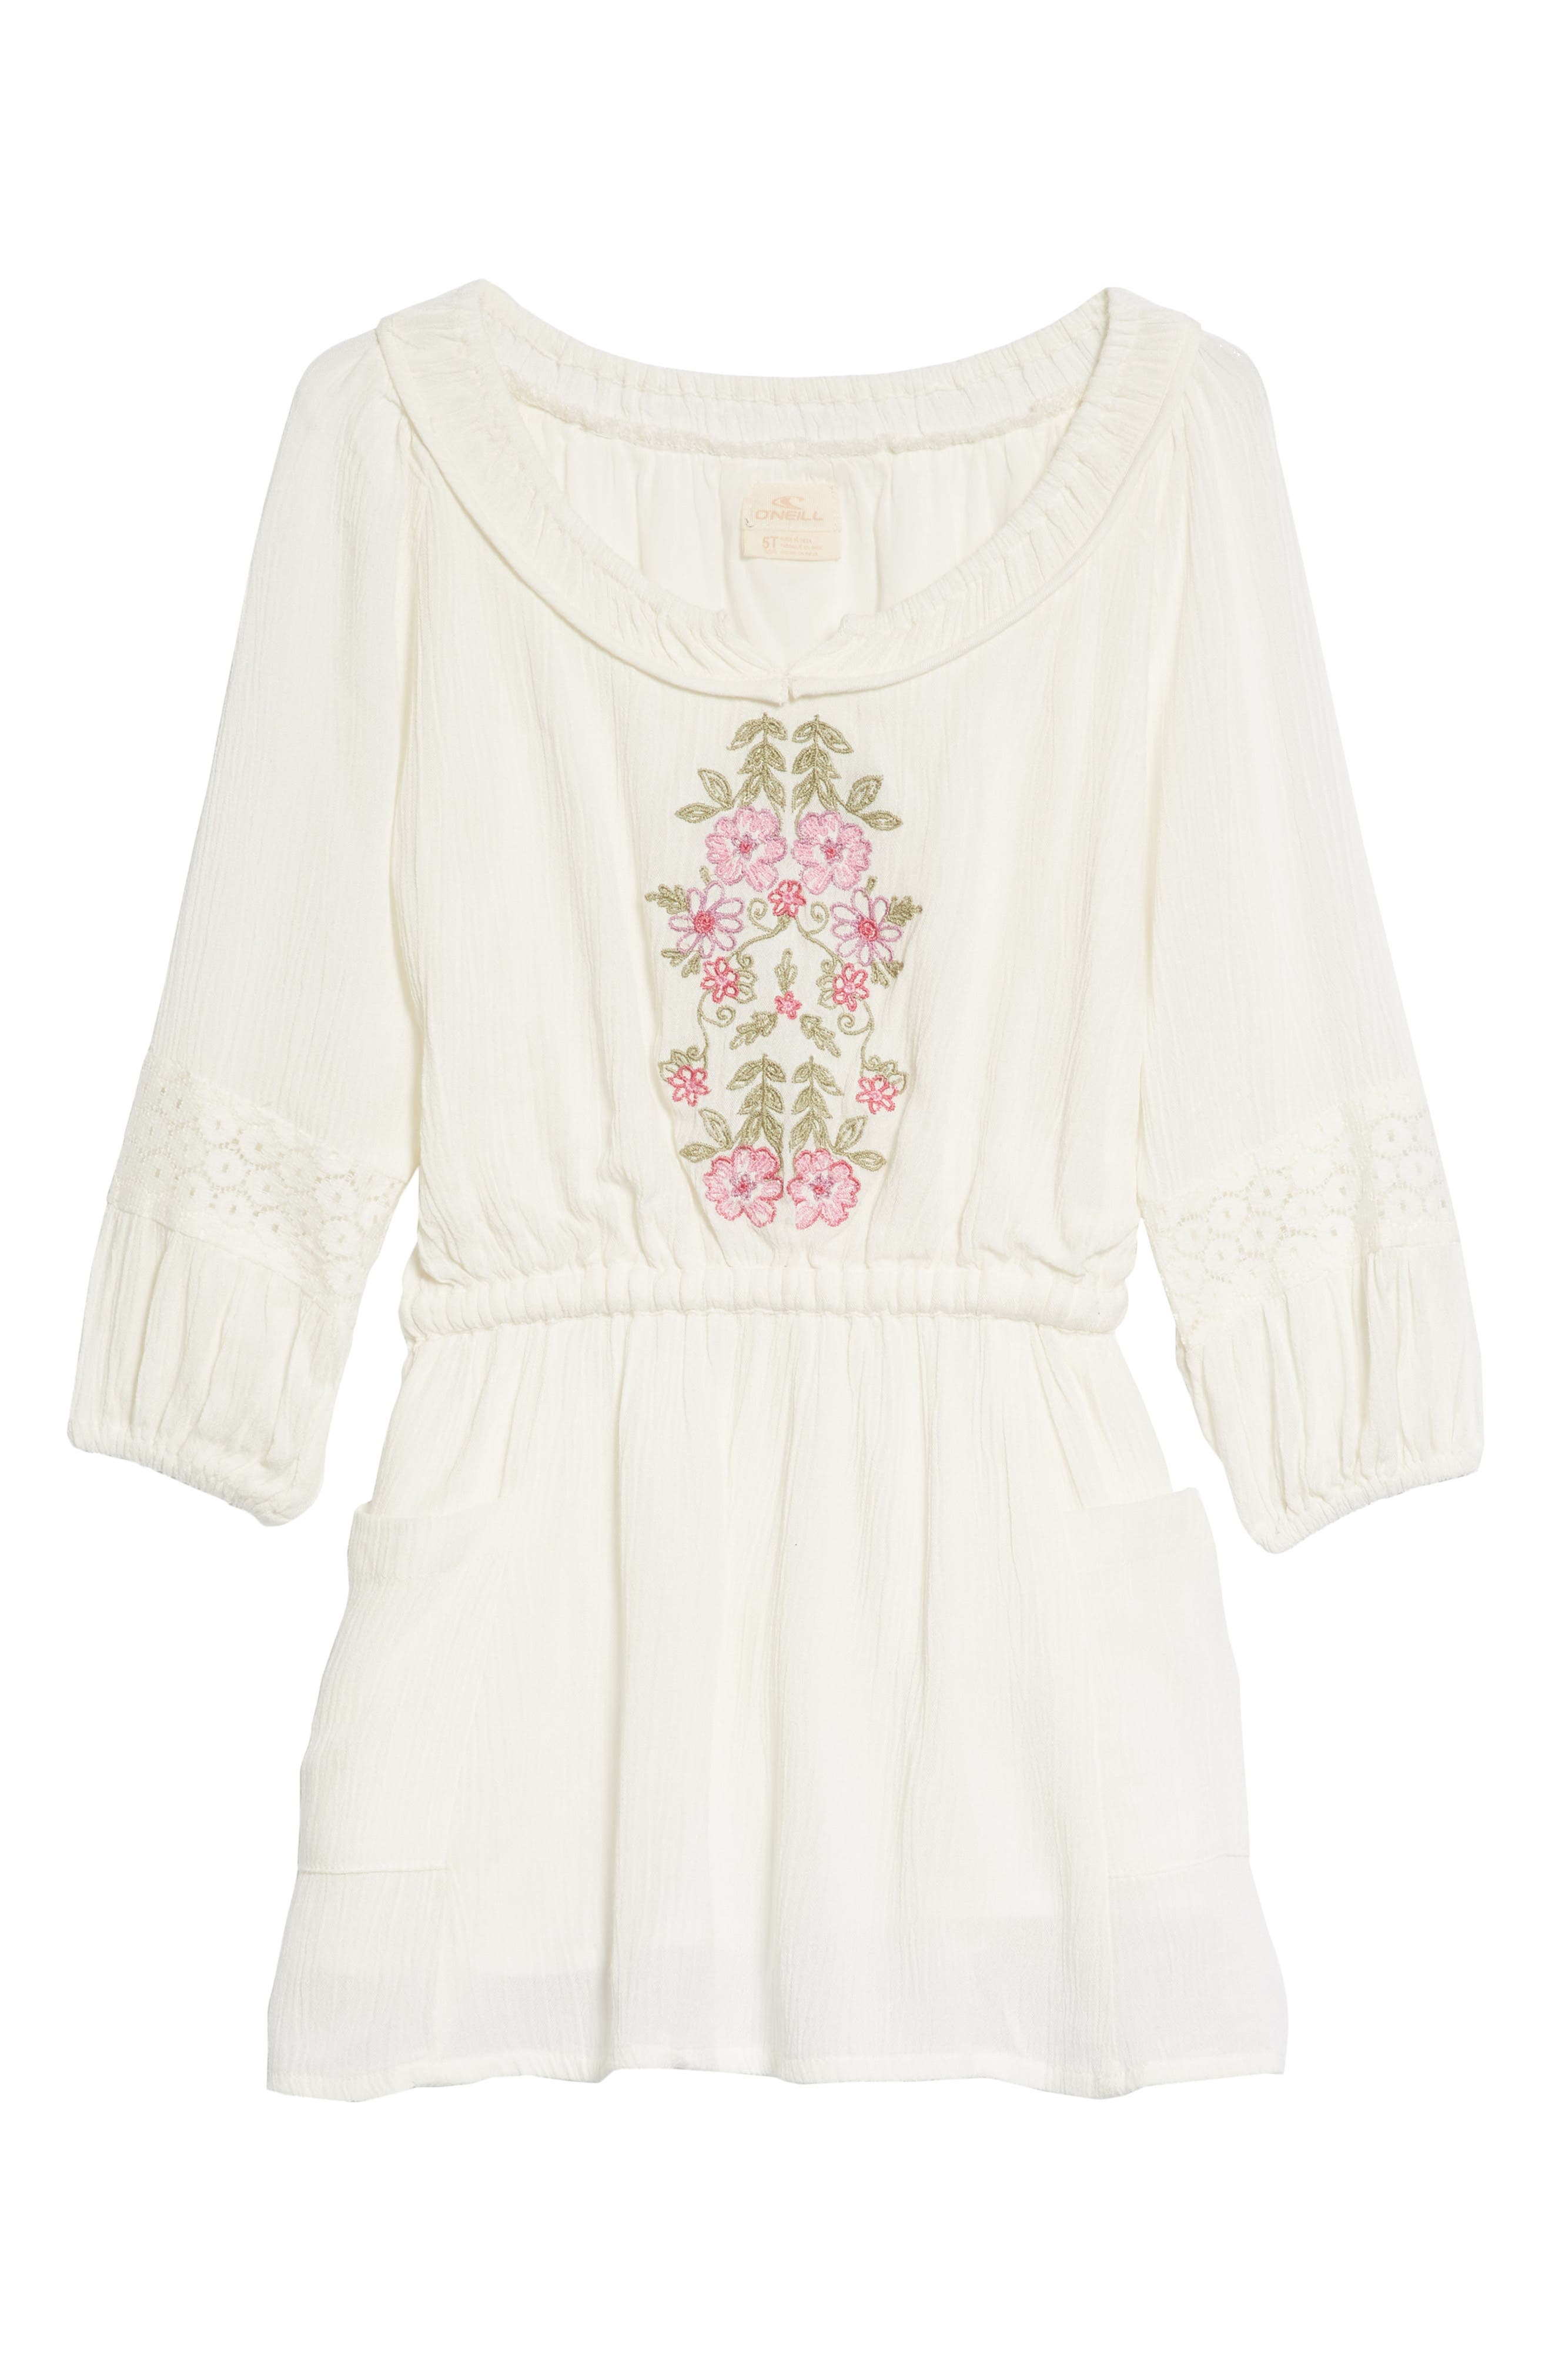 Malina Floral Embroidered Dress,                             Main thumbnail 1, color,                             White